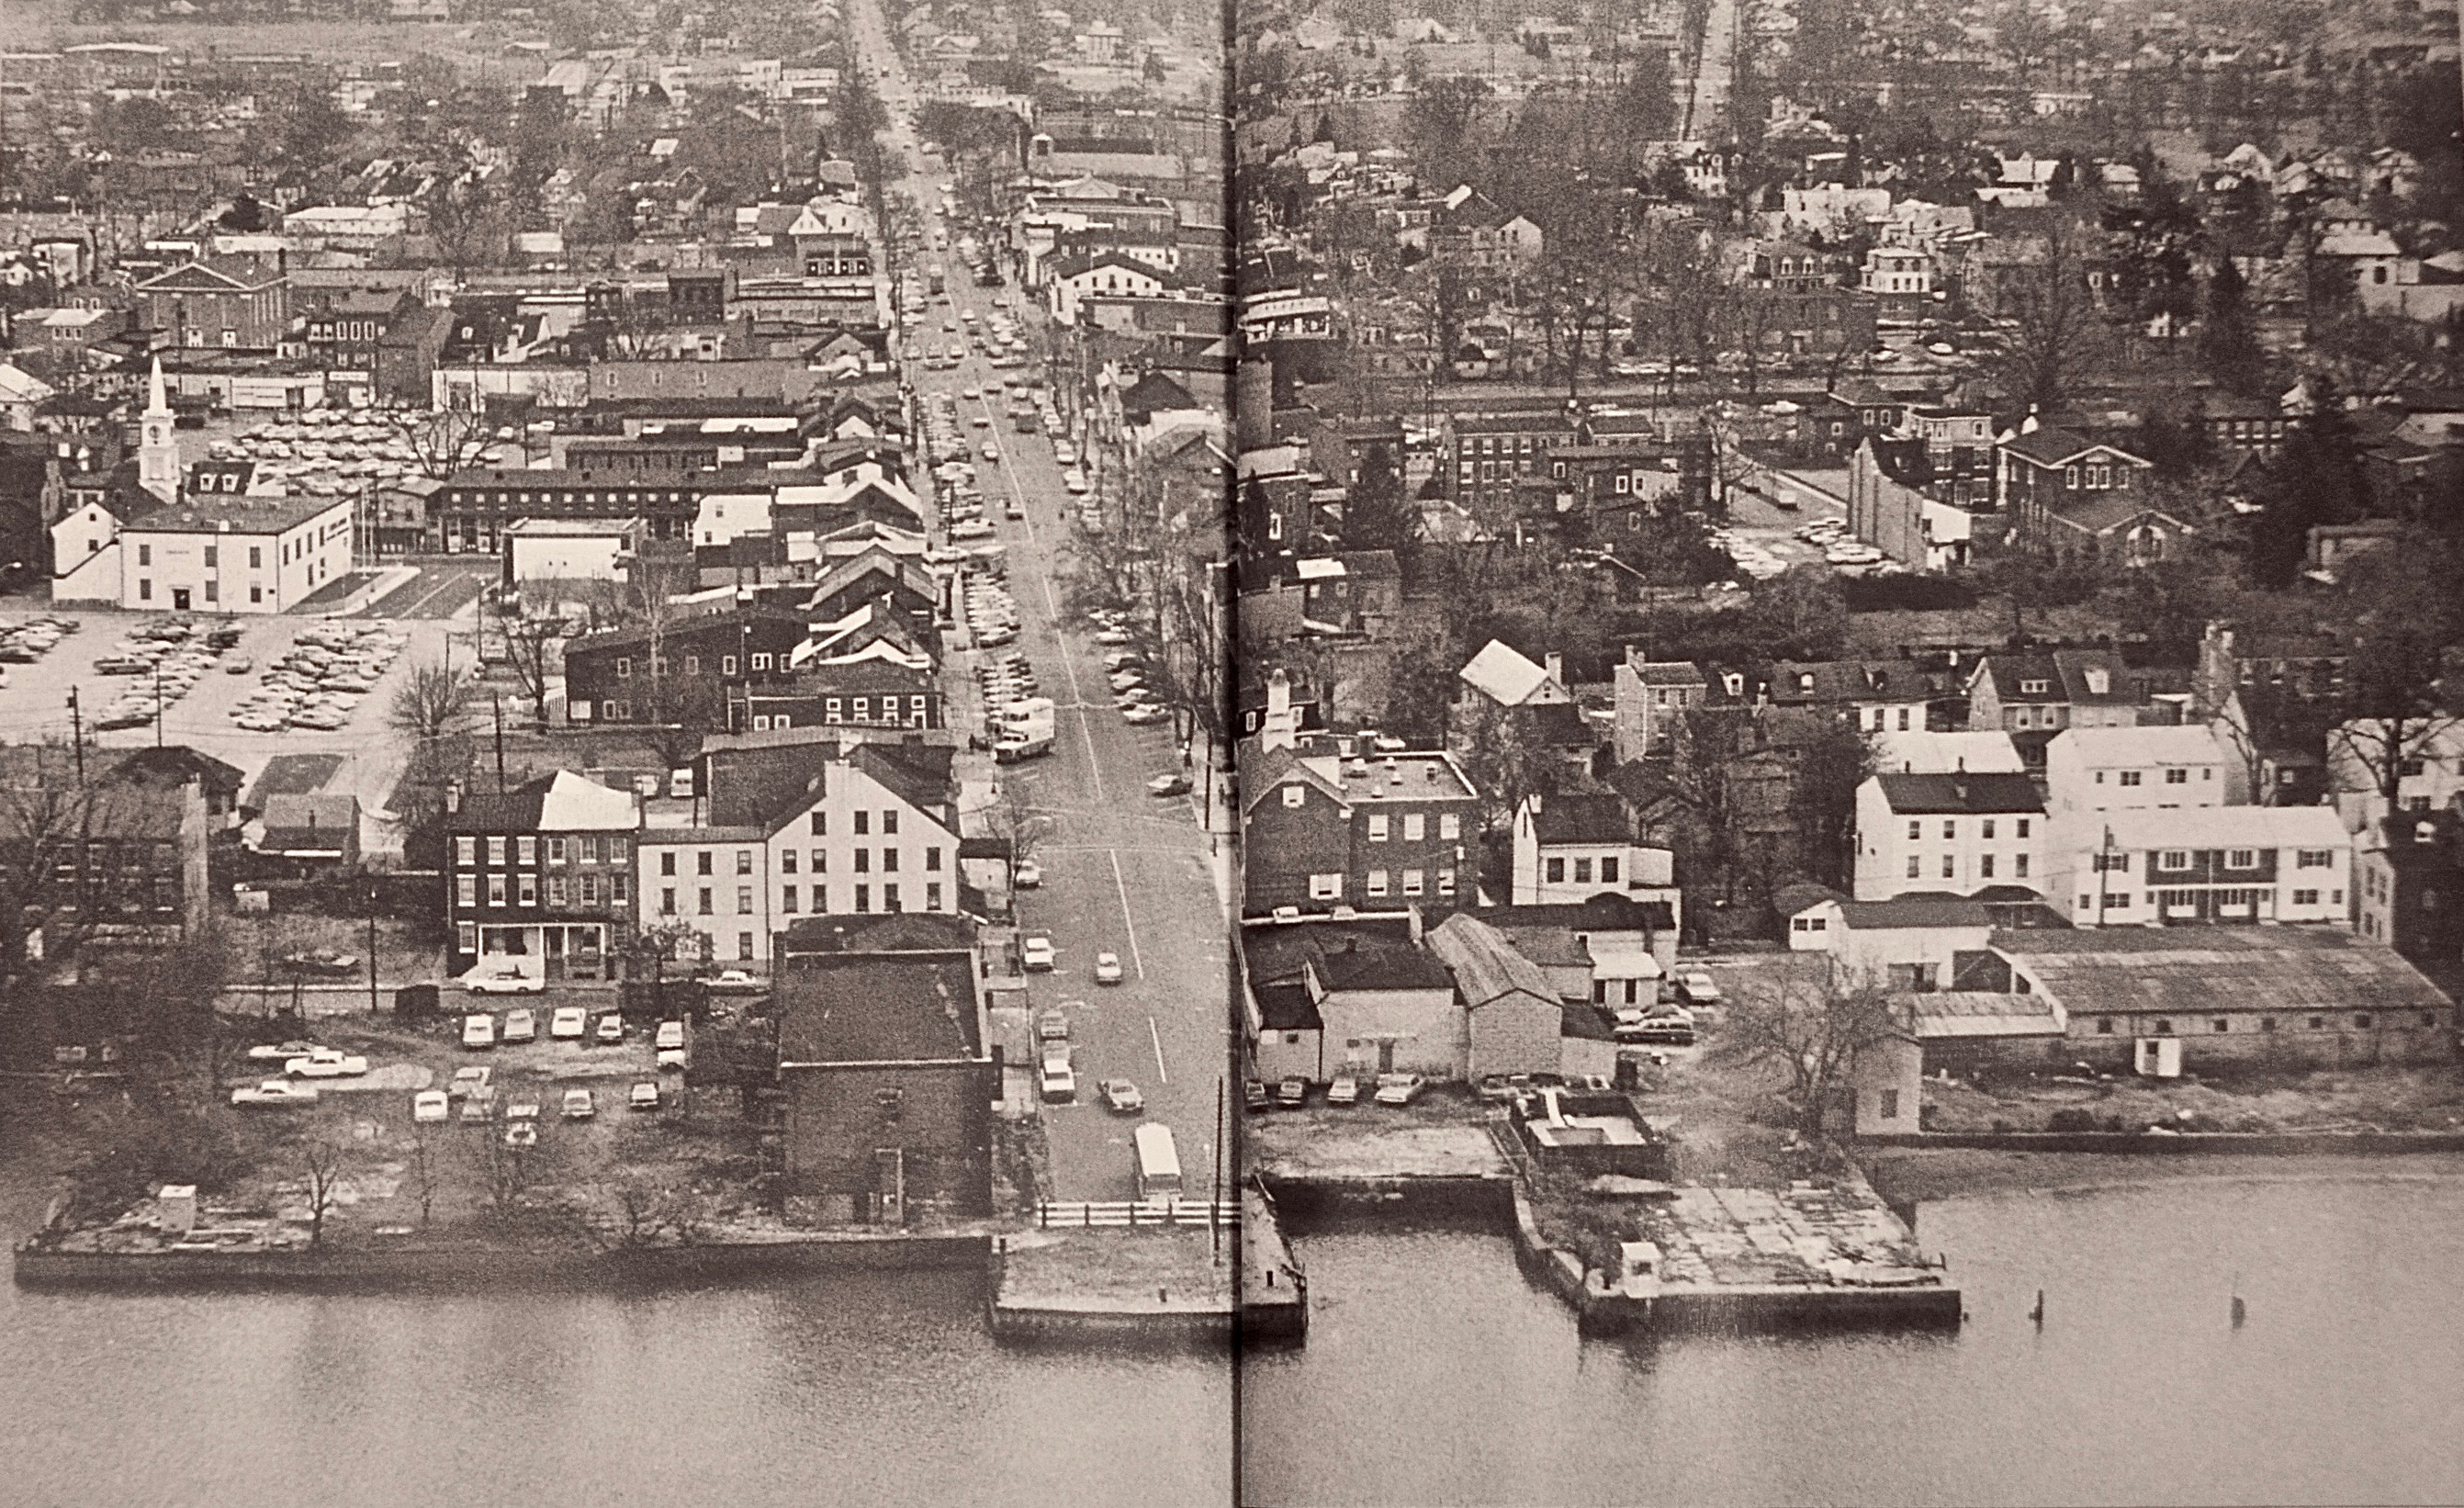 Burlington City waterfront in the 70´s, as shown from an aerial view. It depicts the rowhouses and factories that once lined the Delaware River. Now there is a promenade and grassy park.